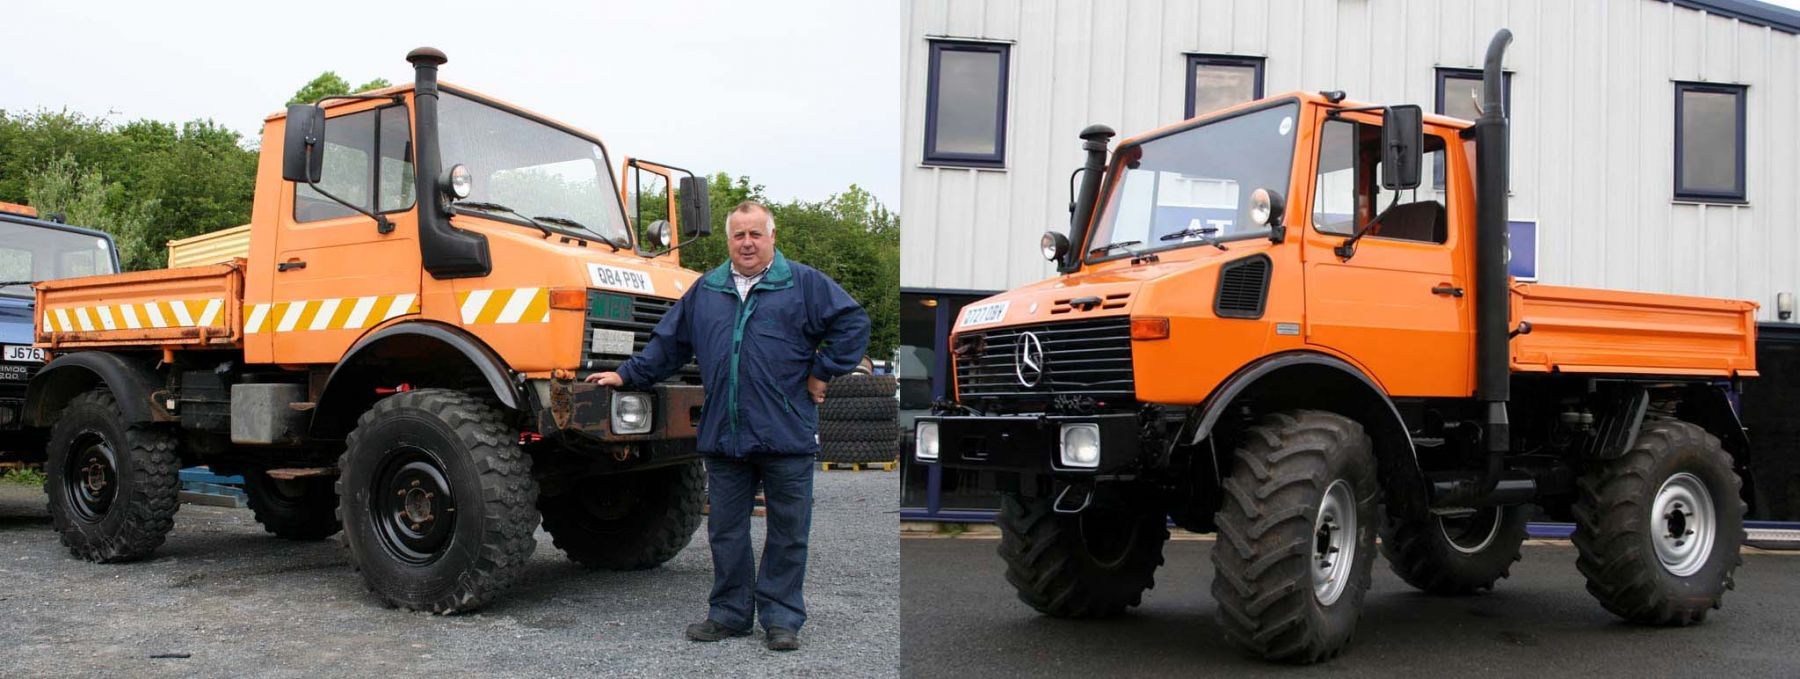 Two Unimog U1200s Sold to Family Contracting Compa